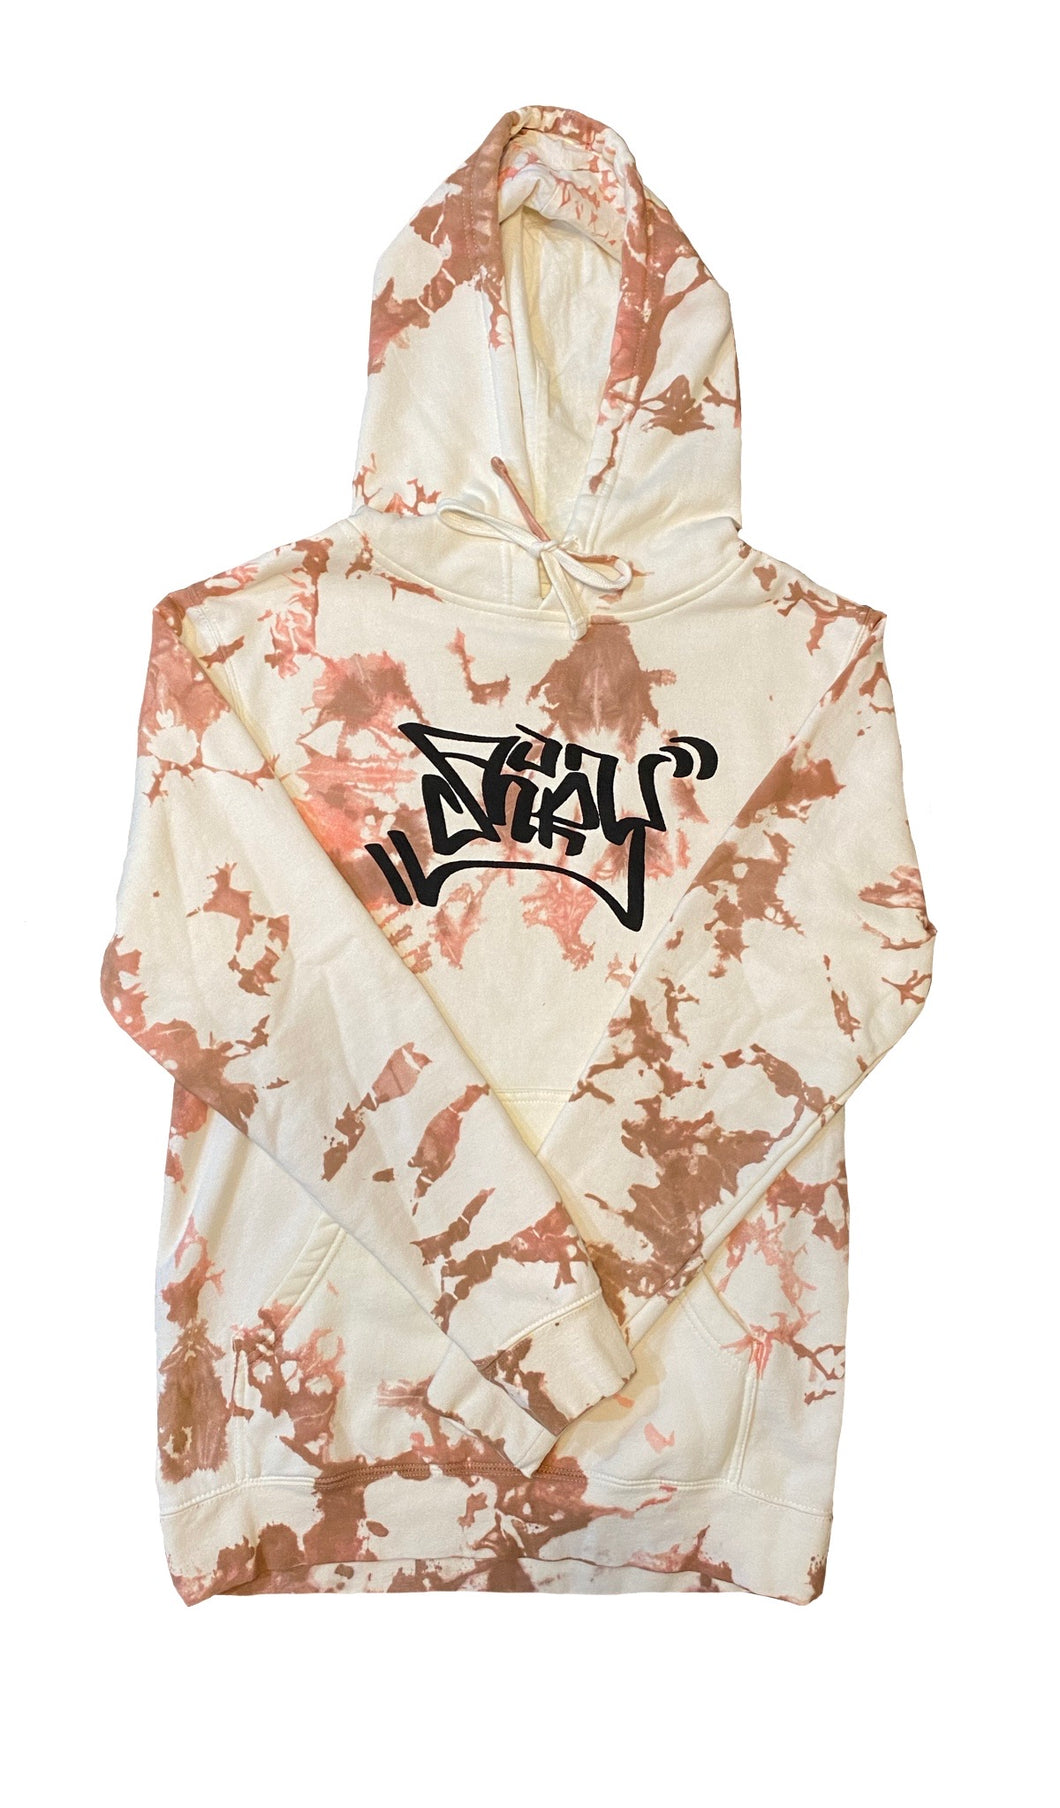 Strawberry Chocolate Graffiti Hoodie Small